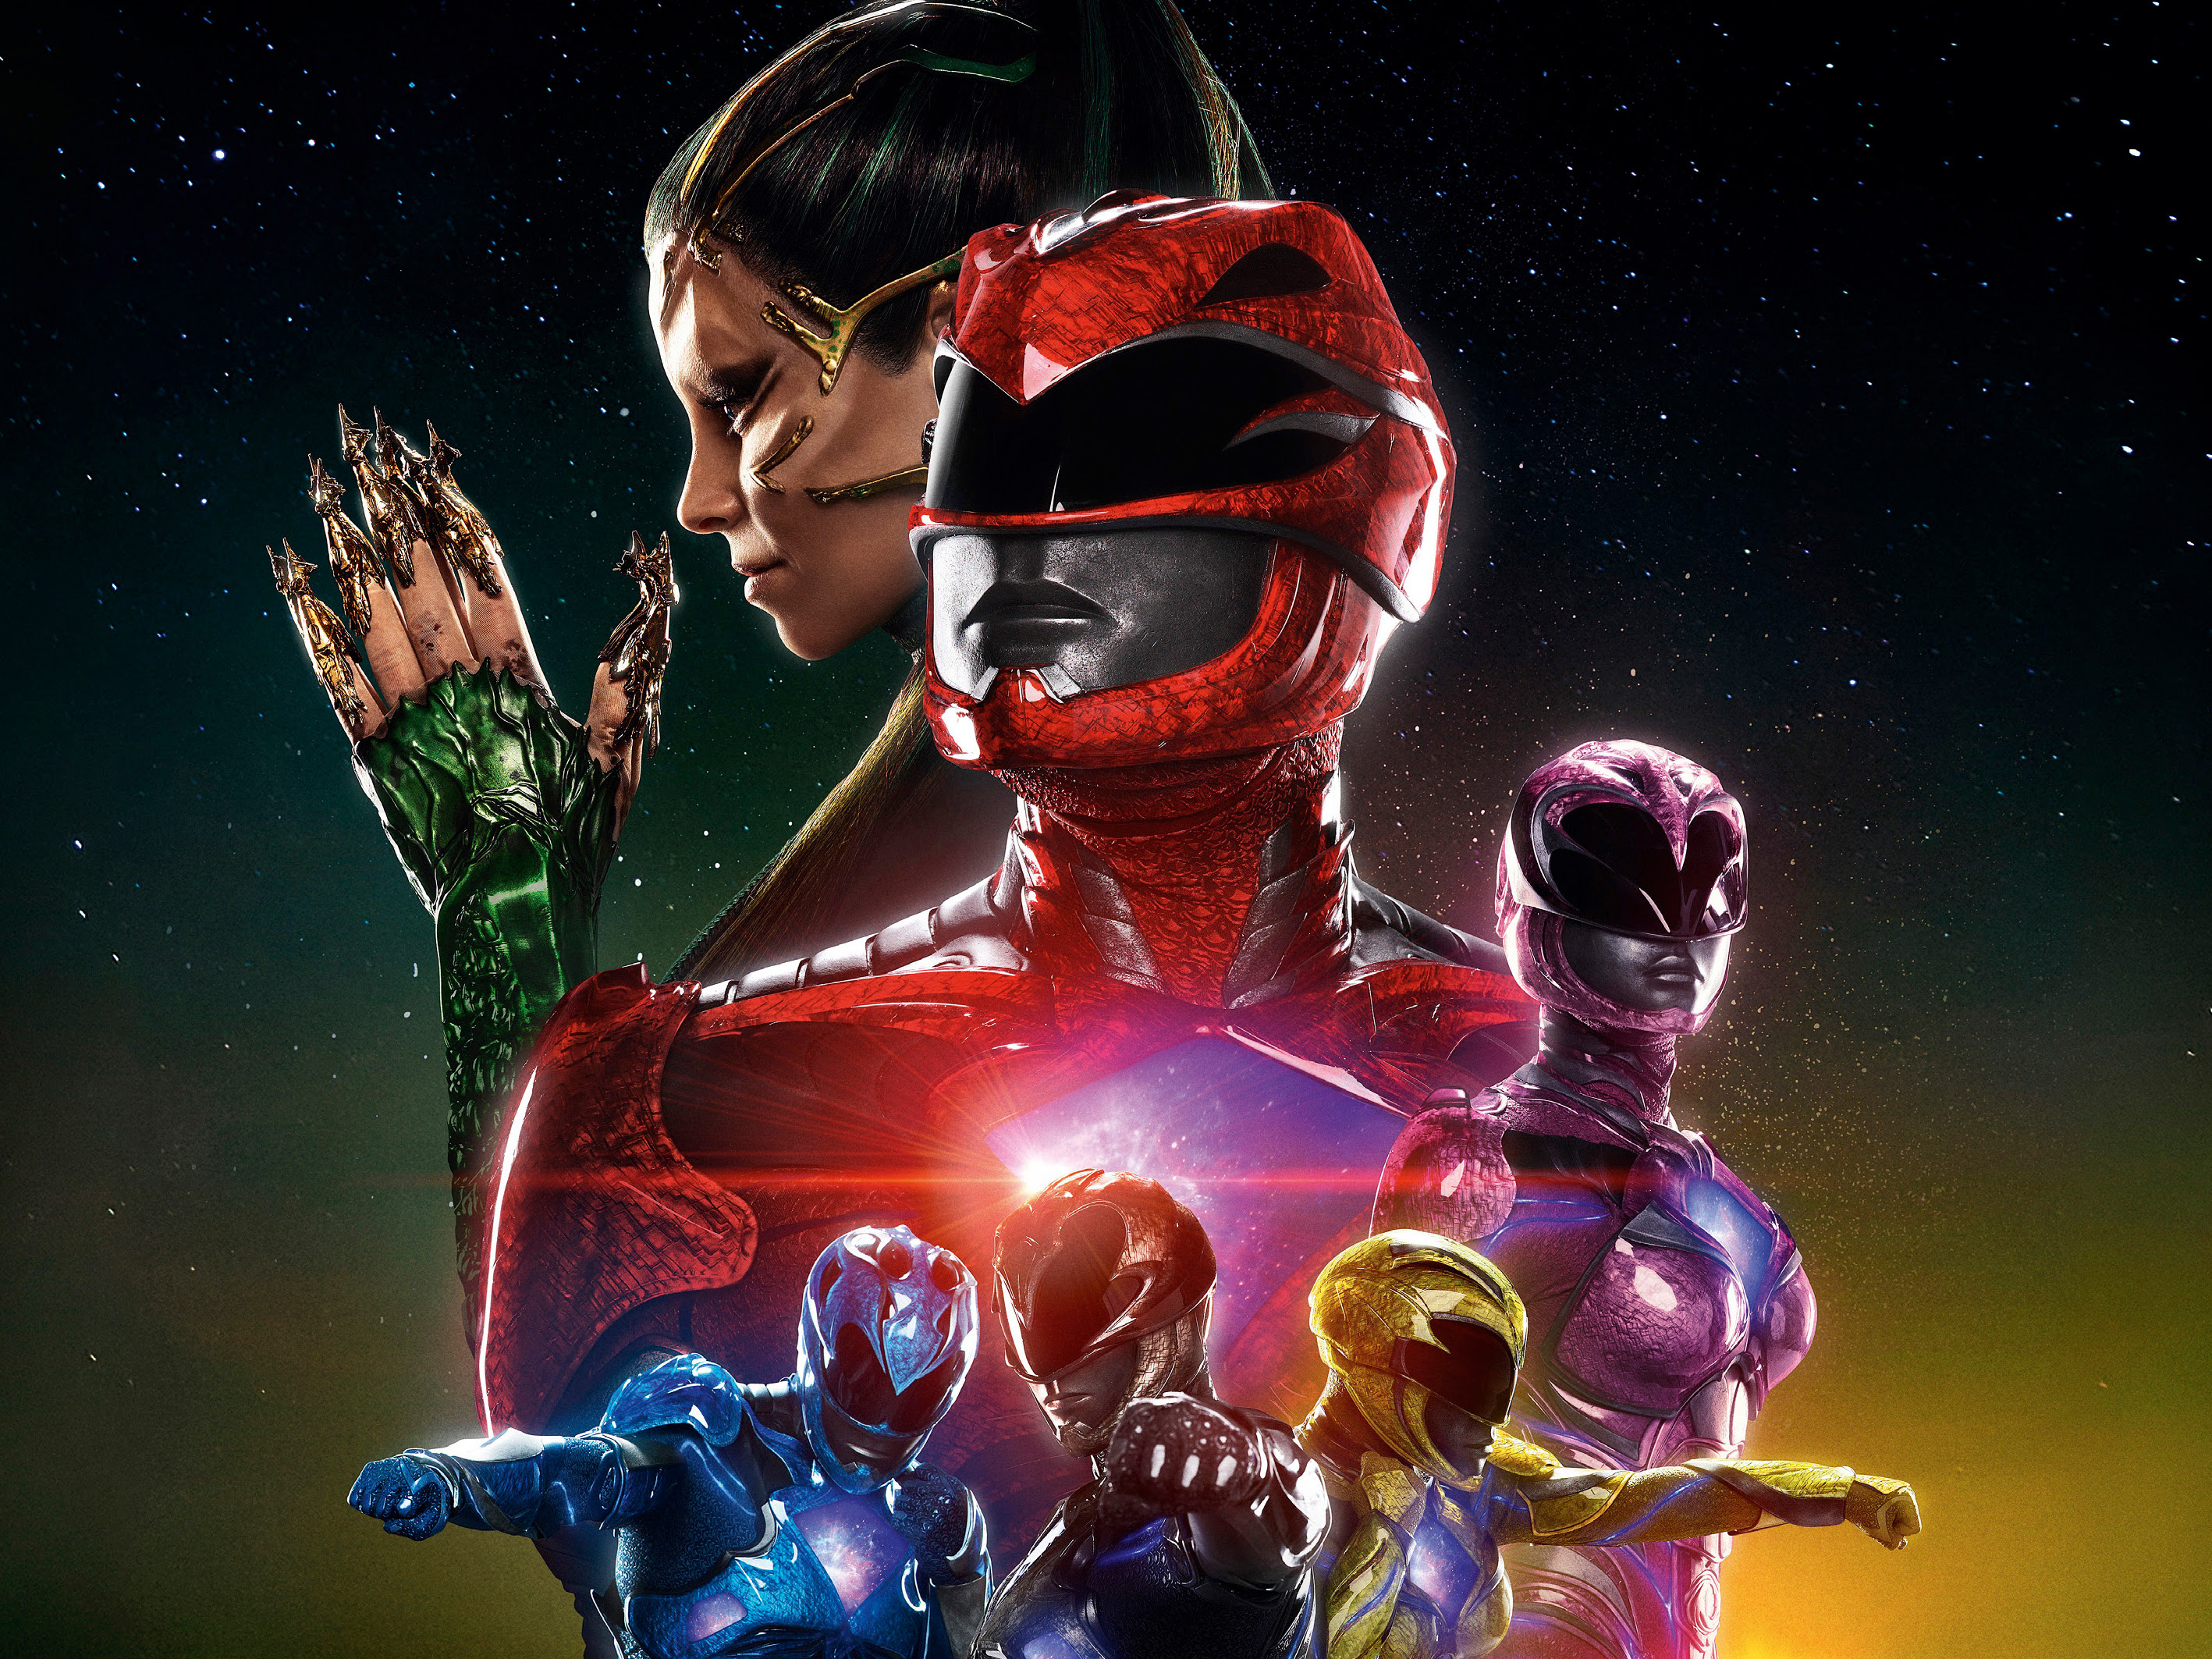 2017 Power Rangers Movie, HD Movies, 4k Wallpapers, Images, Backgrounds, Photos and Pictures